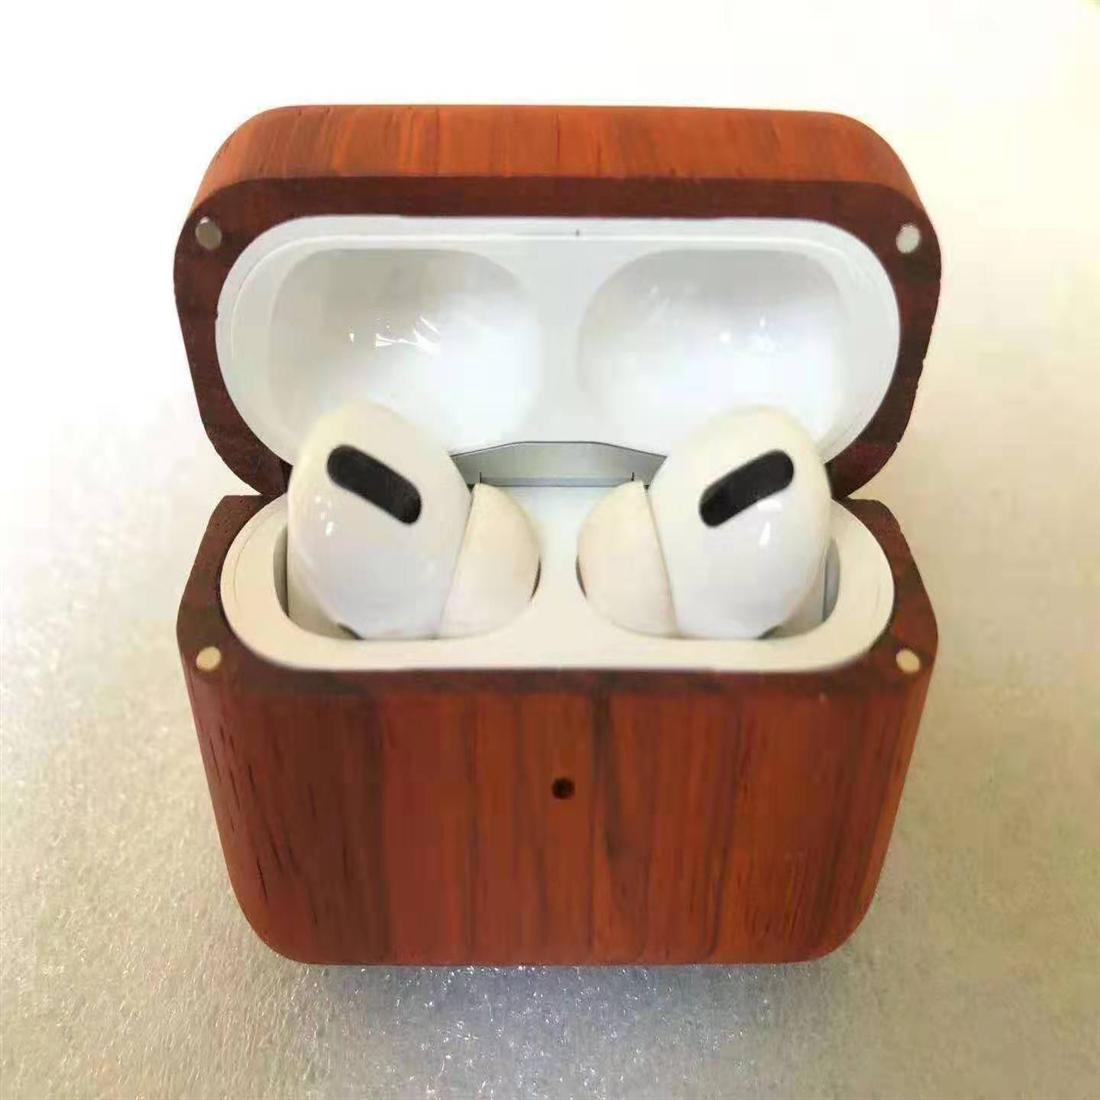 Airpods pro covers AirPodsPro cherries